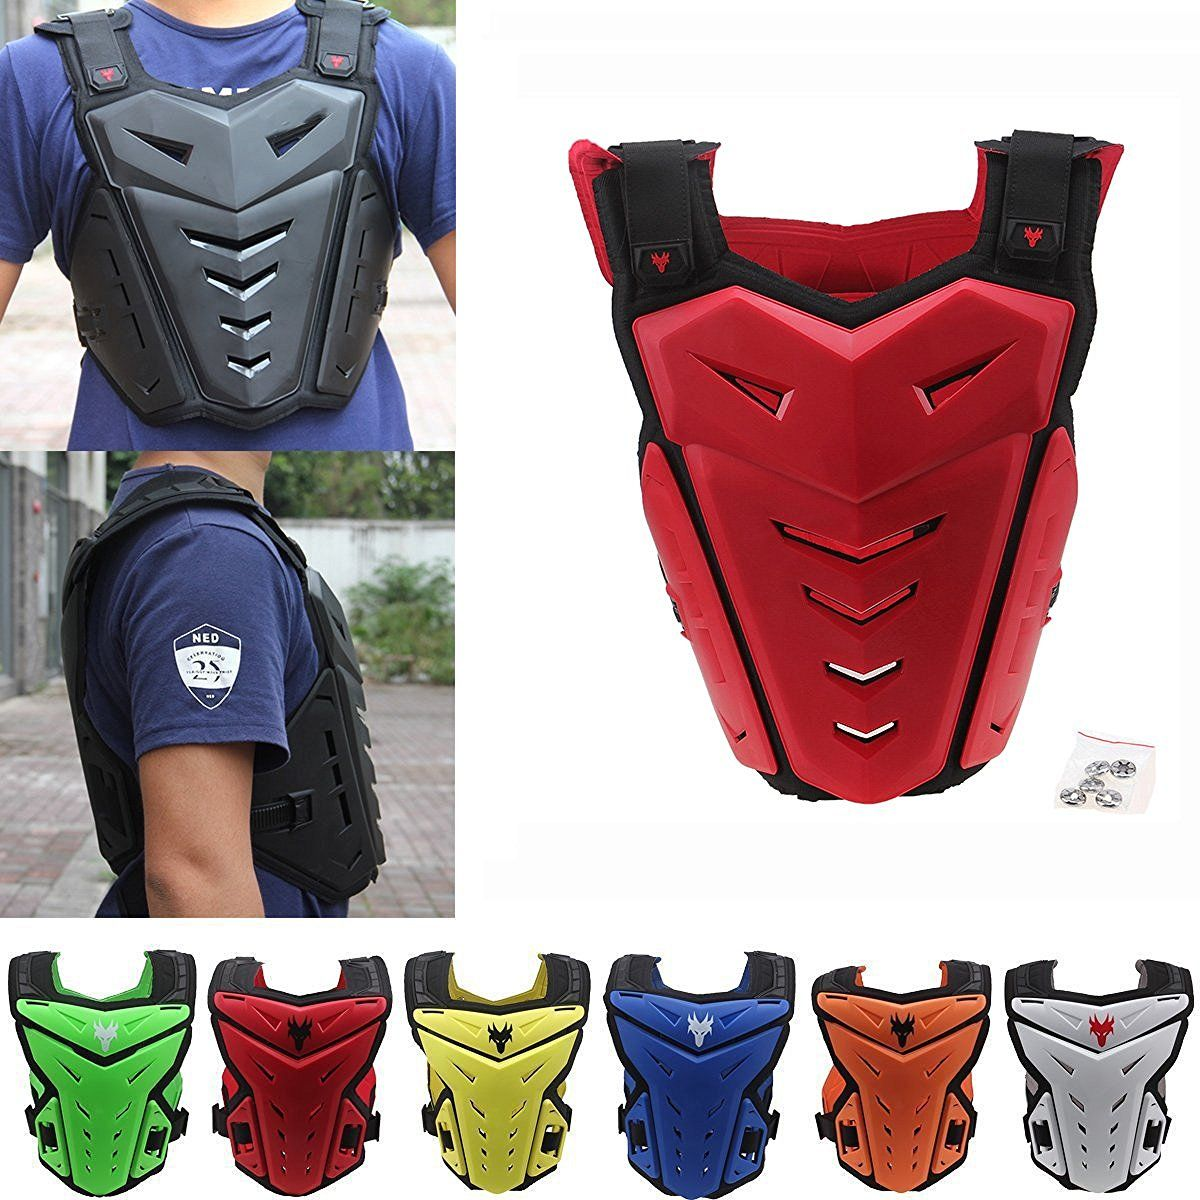 Amazon Com Possbay Motorcycle Body Armor Gear Back Chest Protectors Motocross Dirt Bike Unisex S To Xxl For Riding Cycling Skat Motocross Motorcycle Gear Bike